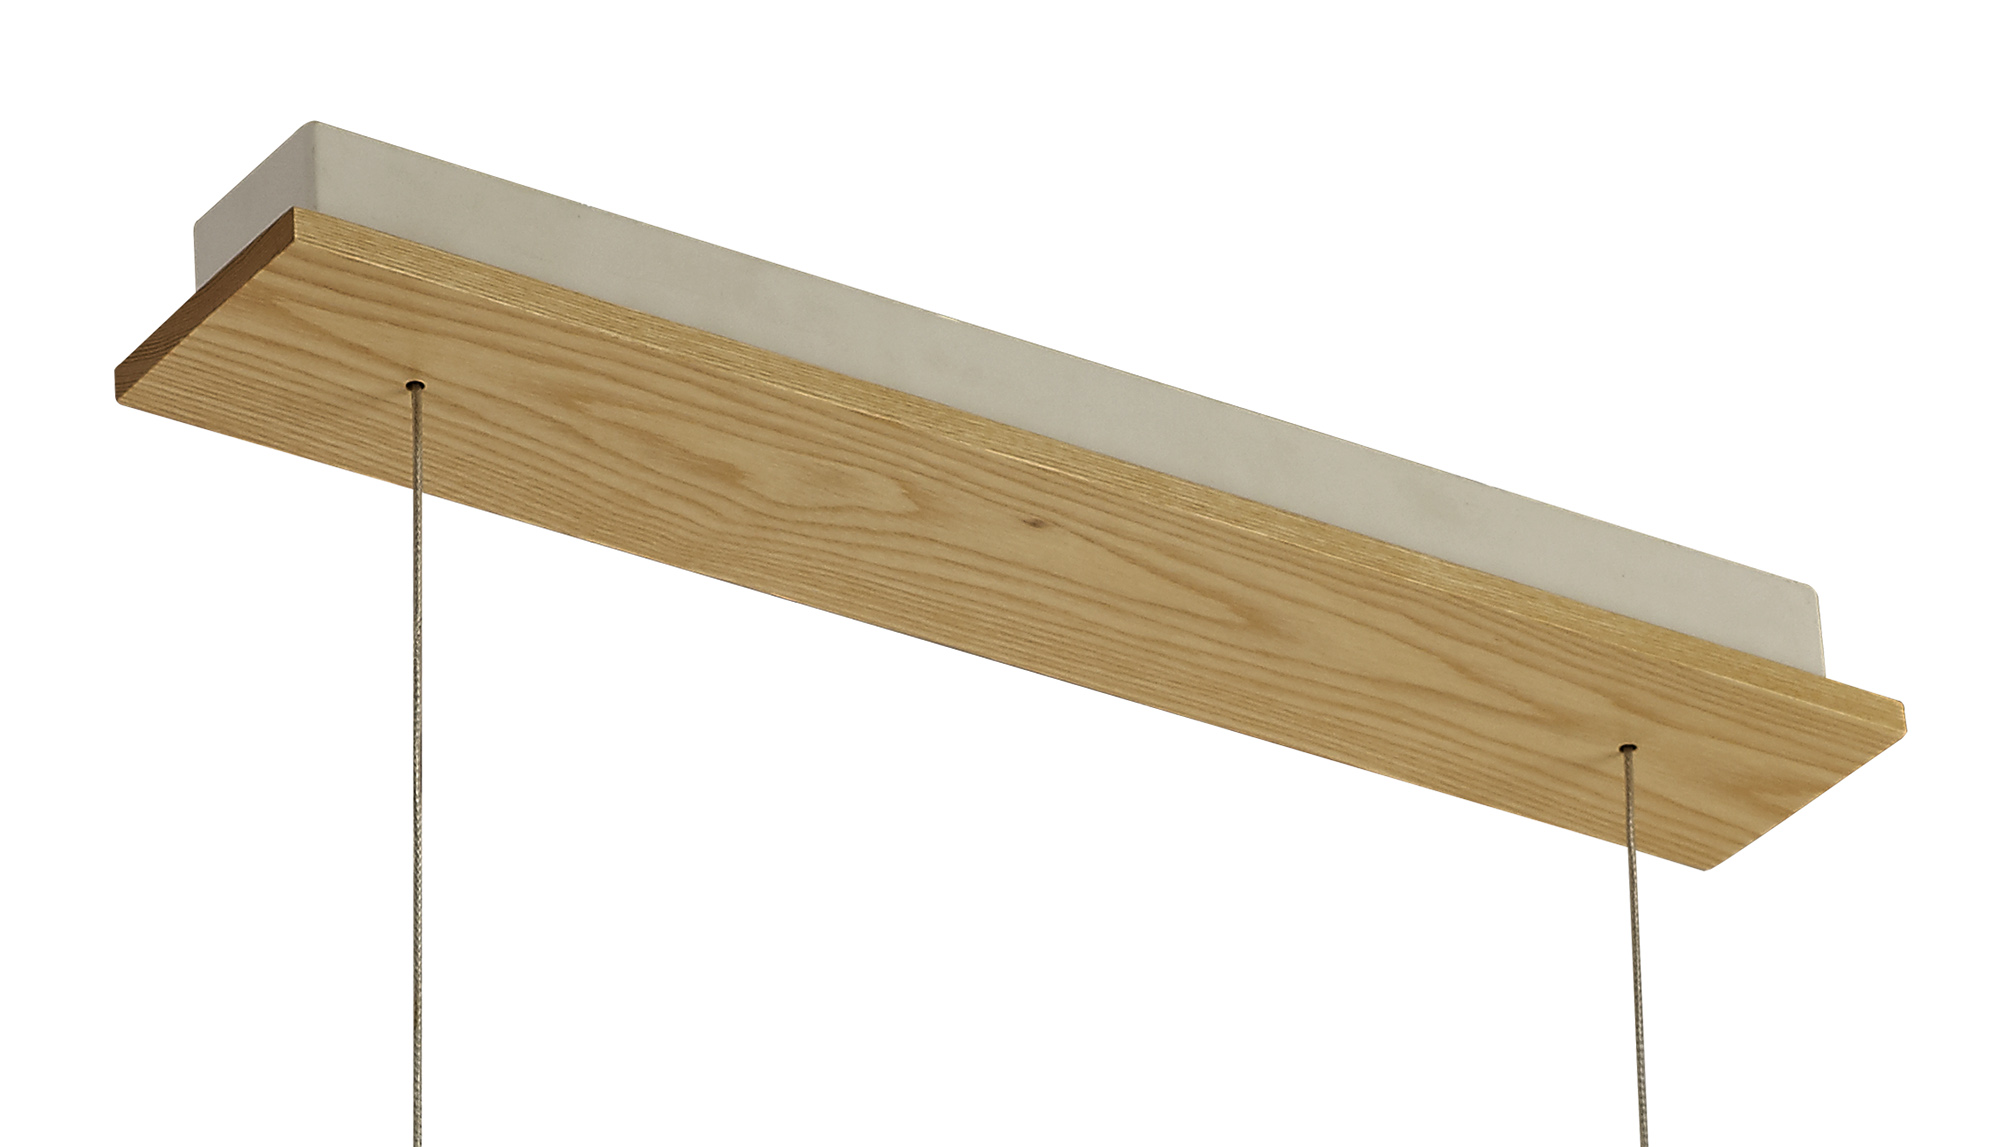 Linear Pendant , 2 x 20W LED, 3000K, 1662lm, Medium Oak, Matt White, 3yrs Warranty